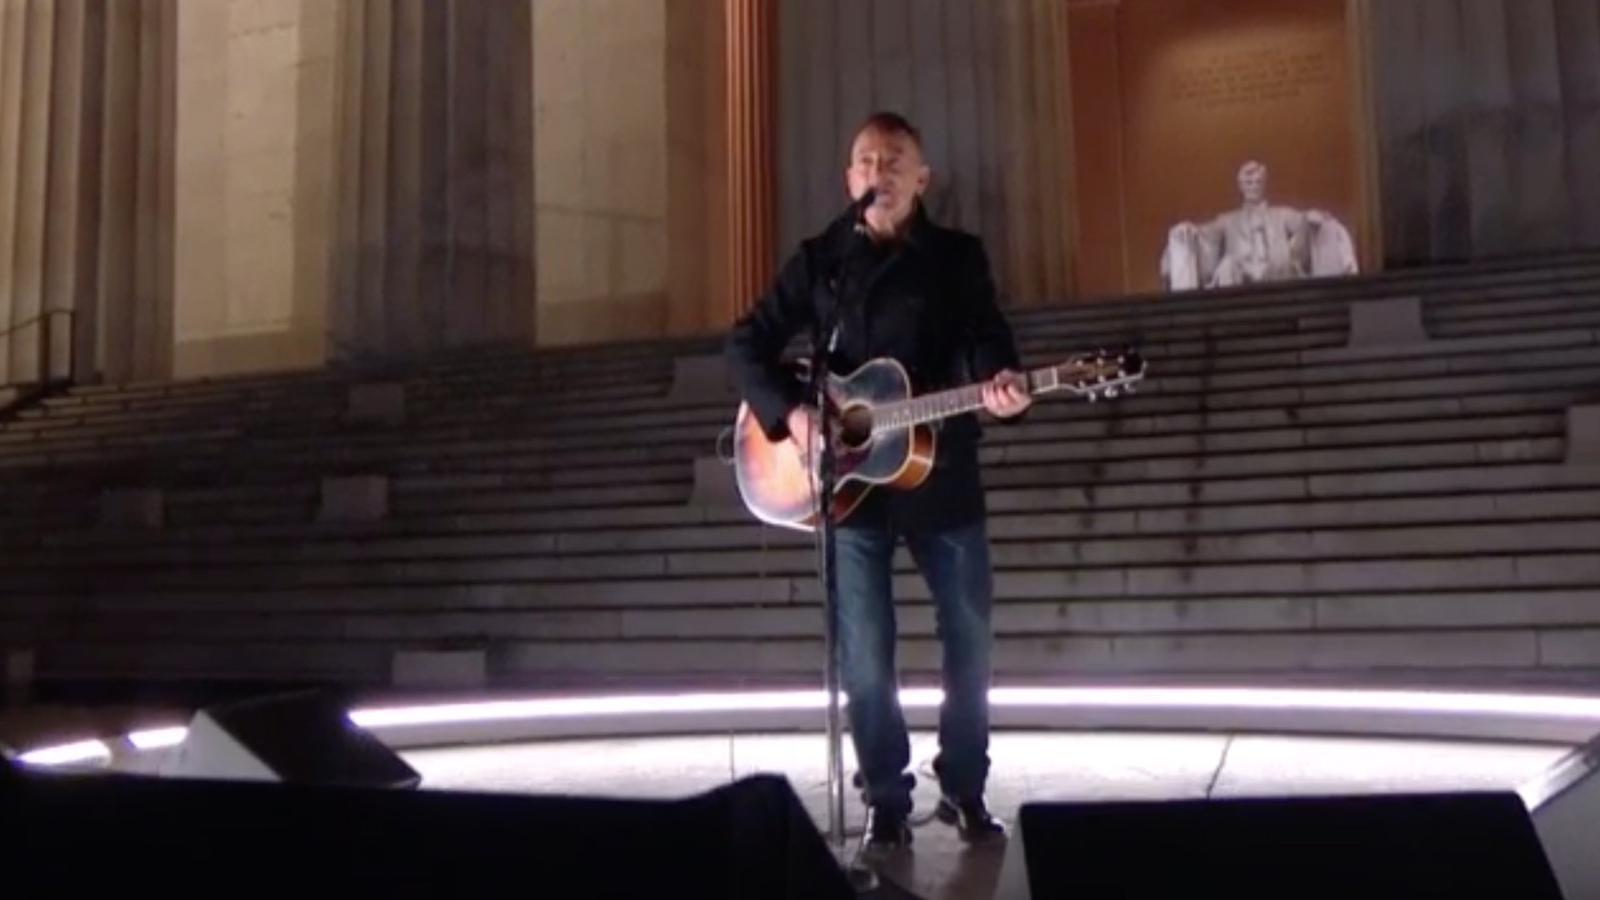 Bruce Springsteen performs at the Celebrating America concert special at the Lincoln Memorial in Washington.